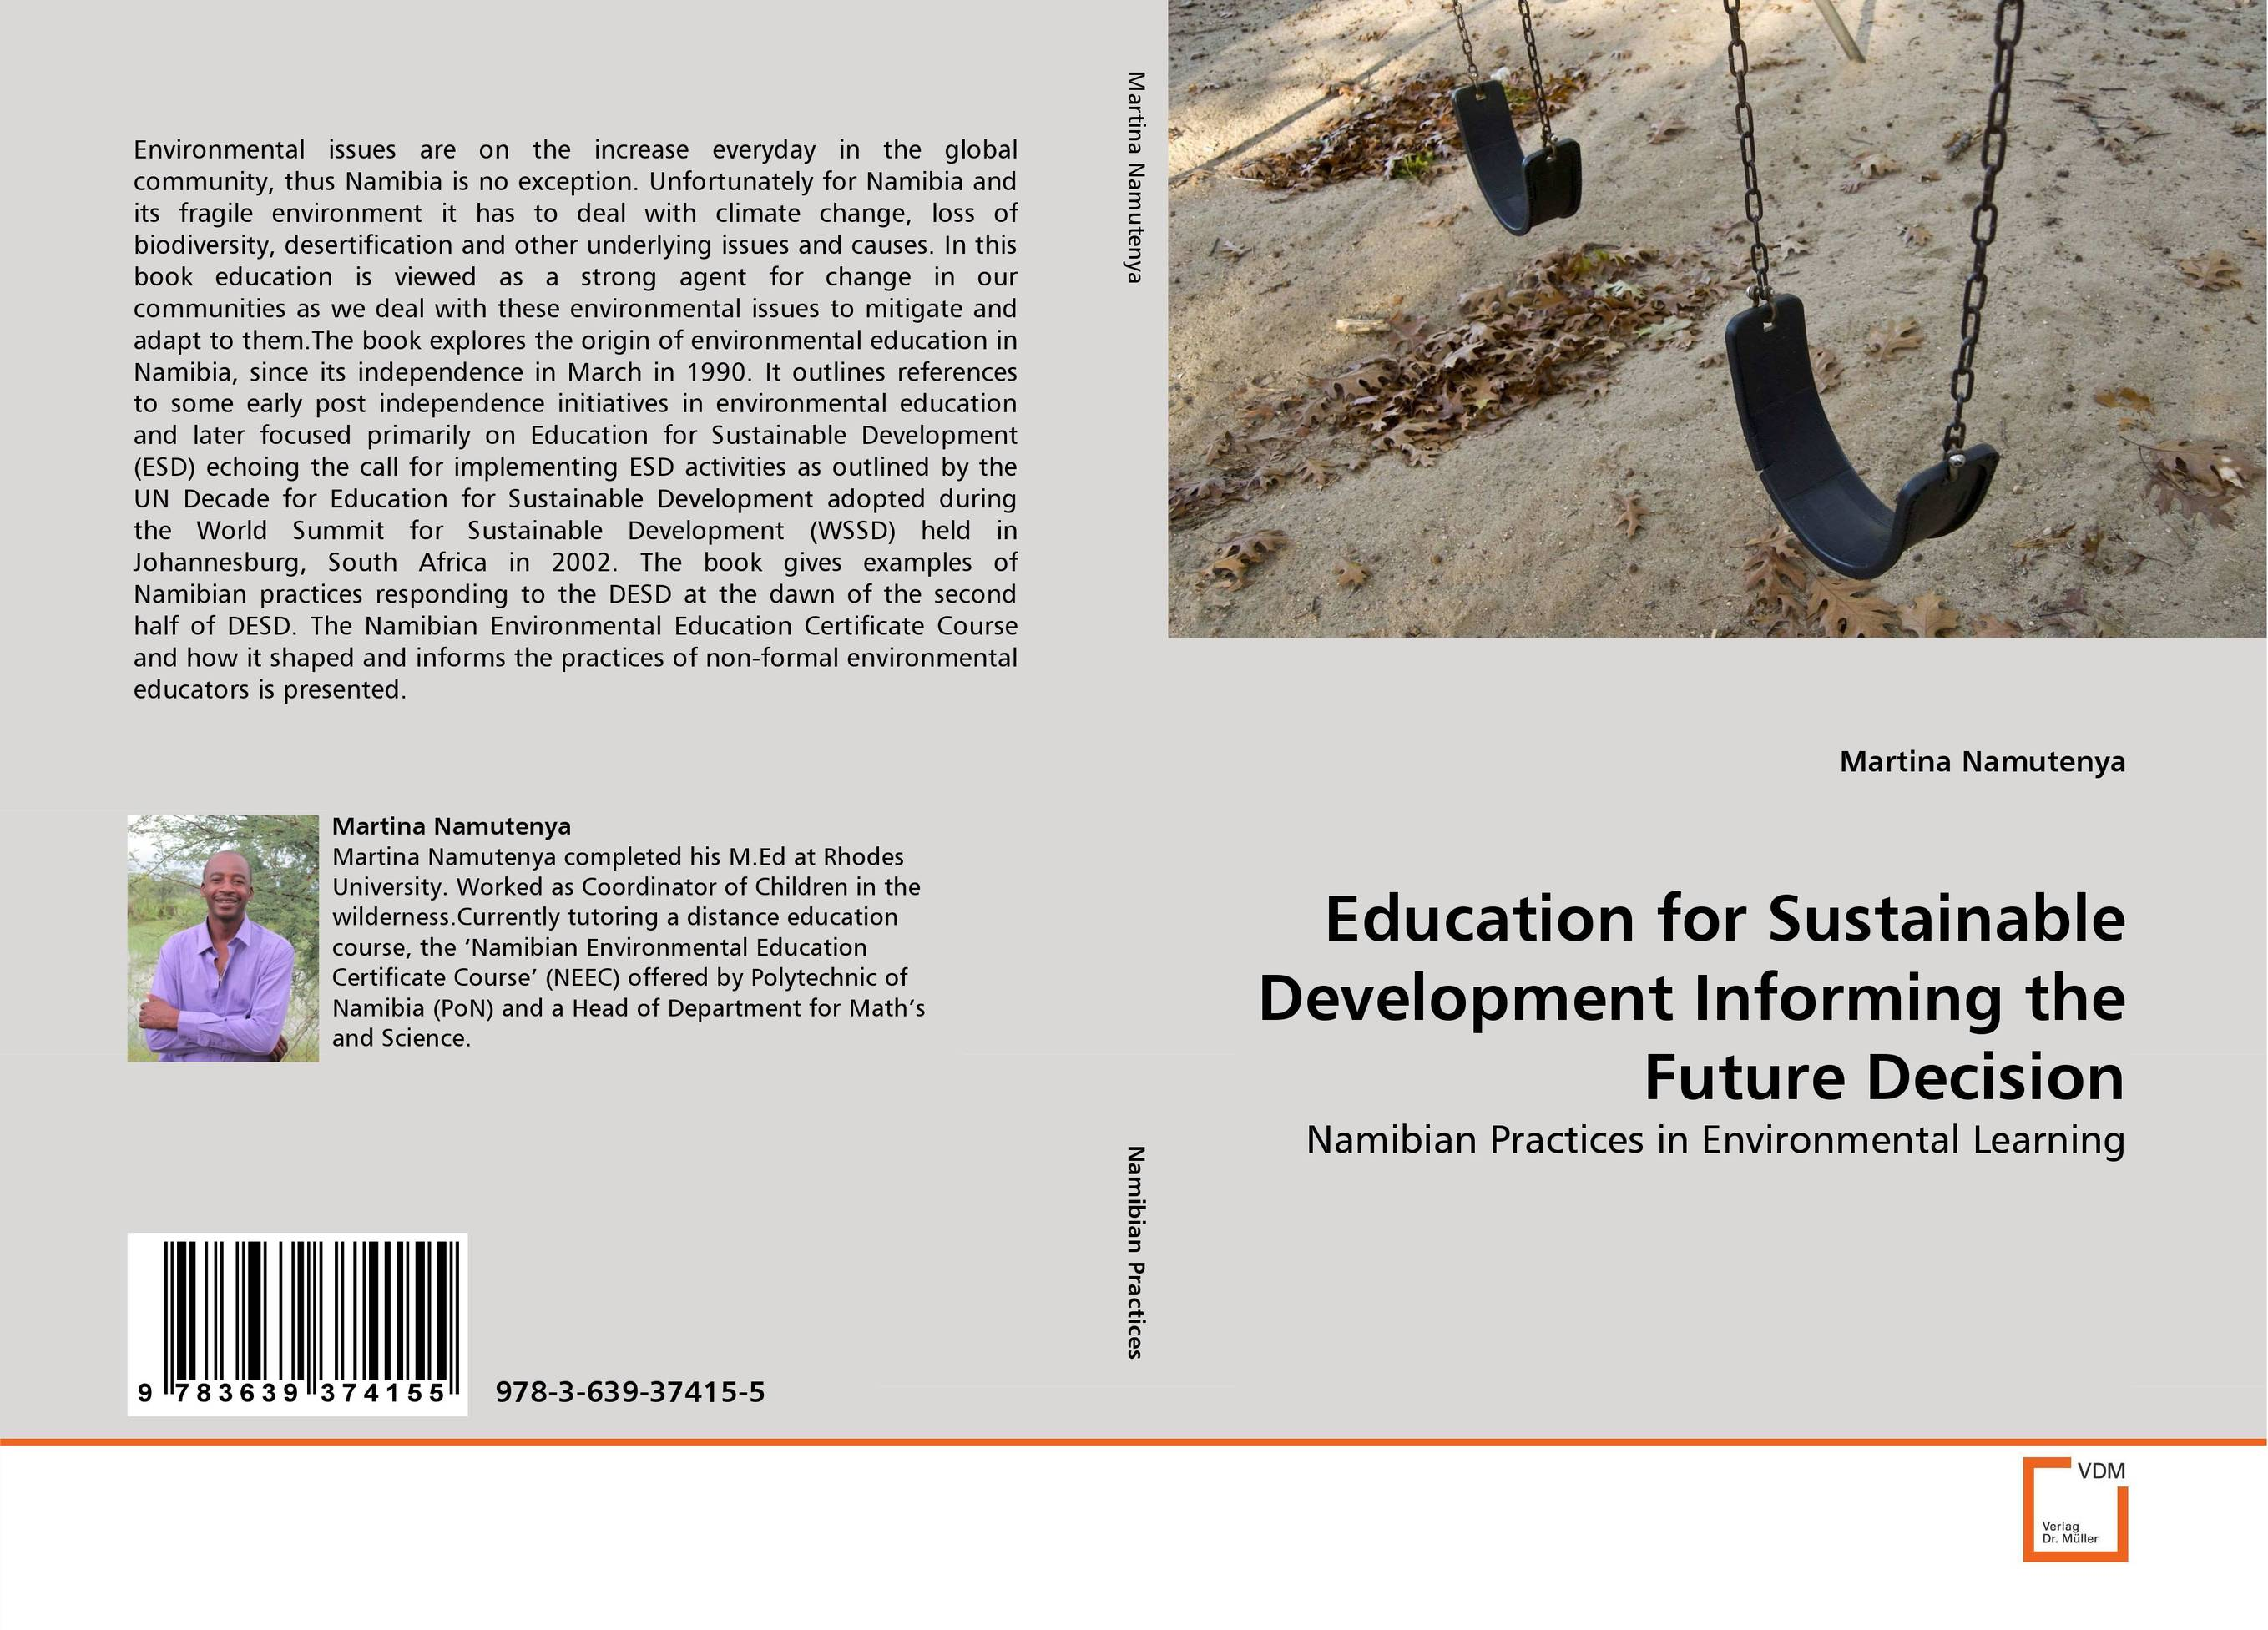 Education for Sustainable Development Informing the Future Decision environmental ethics and sustainable development